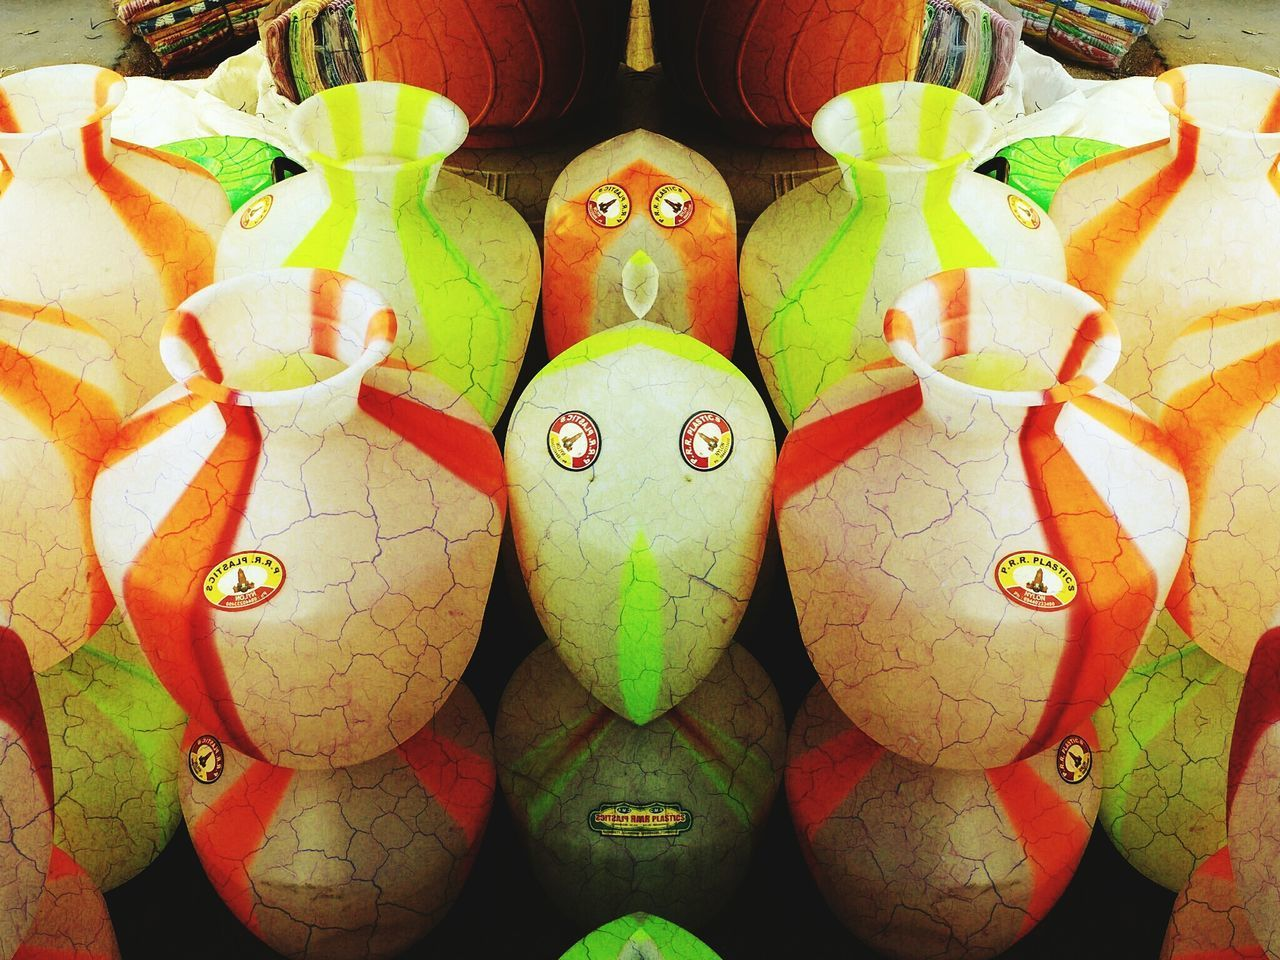 Large Group Of Objects No People Close-up Indoors  Day Eyem Best Shots Eyeemphotography EyeEm Best Edits Eyeem Market Outdoors Artistic Freedom Editing For Fun Edit Photo Artisticphoto ObjectPhotography Objects Objects And Subjects Expressive Expressionism Expressive Sculpture Expressions Funny Pics Random Edit